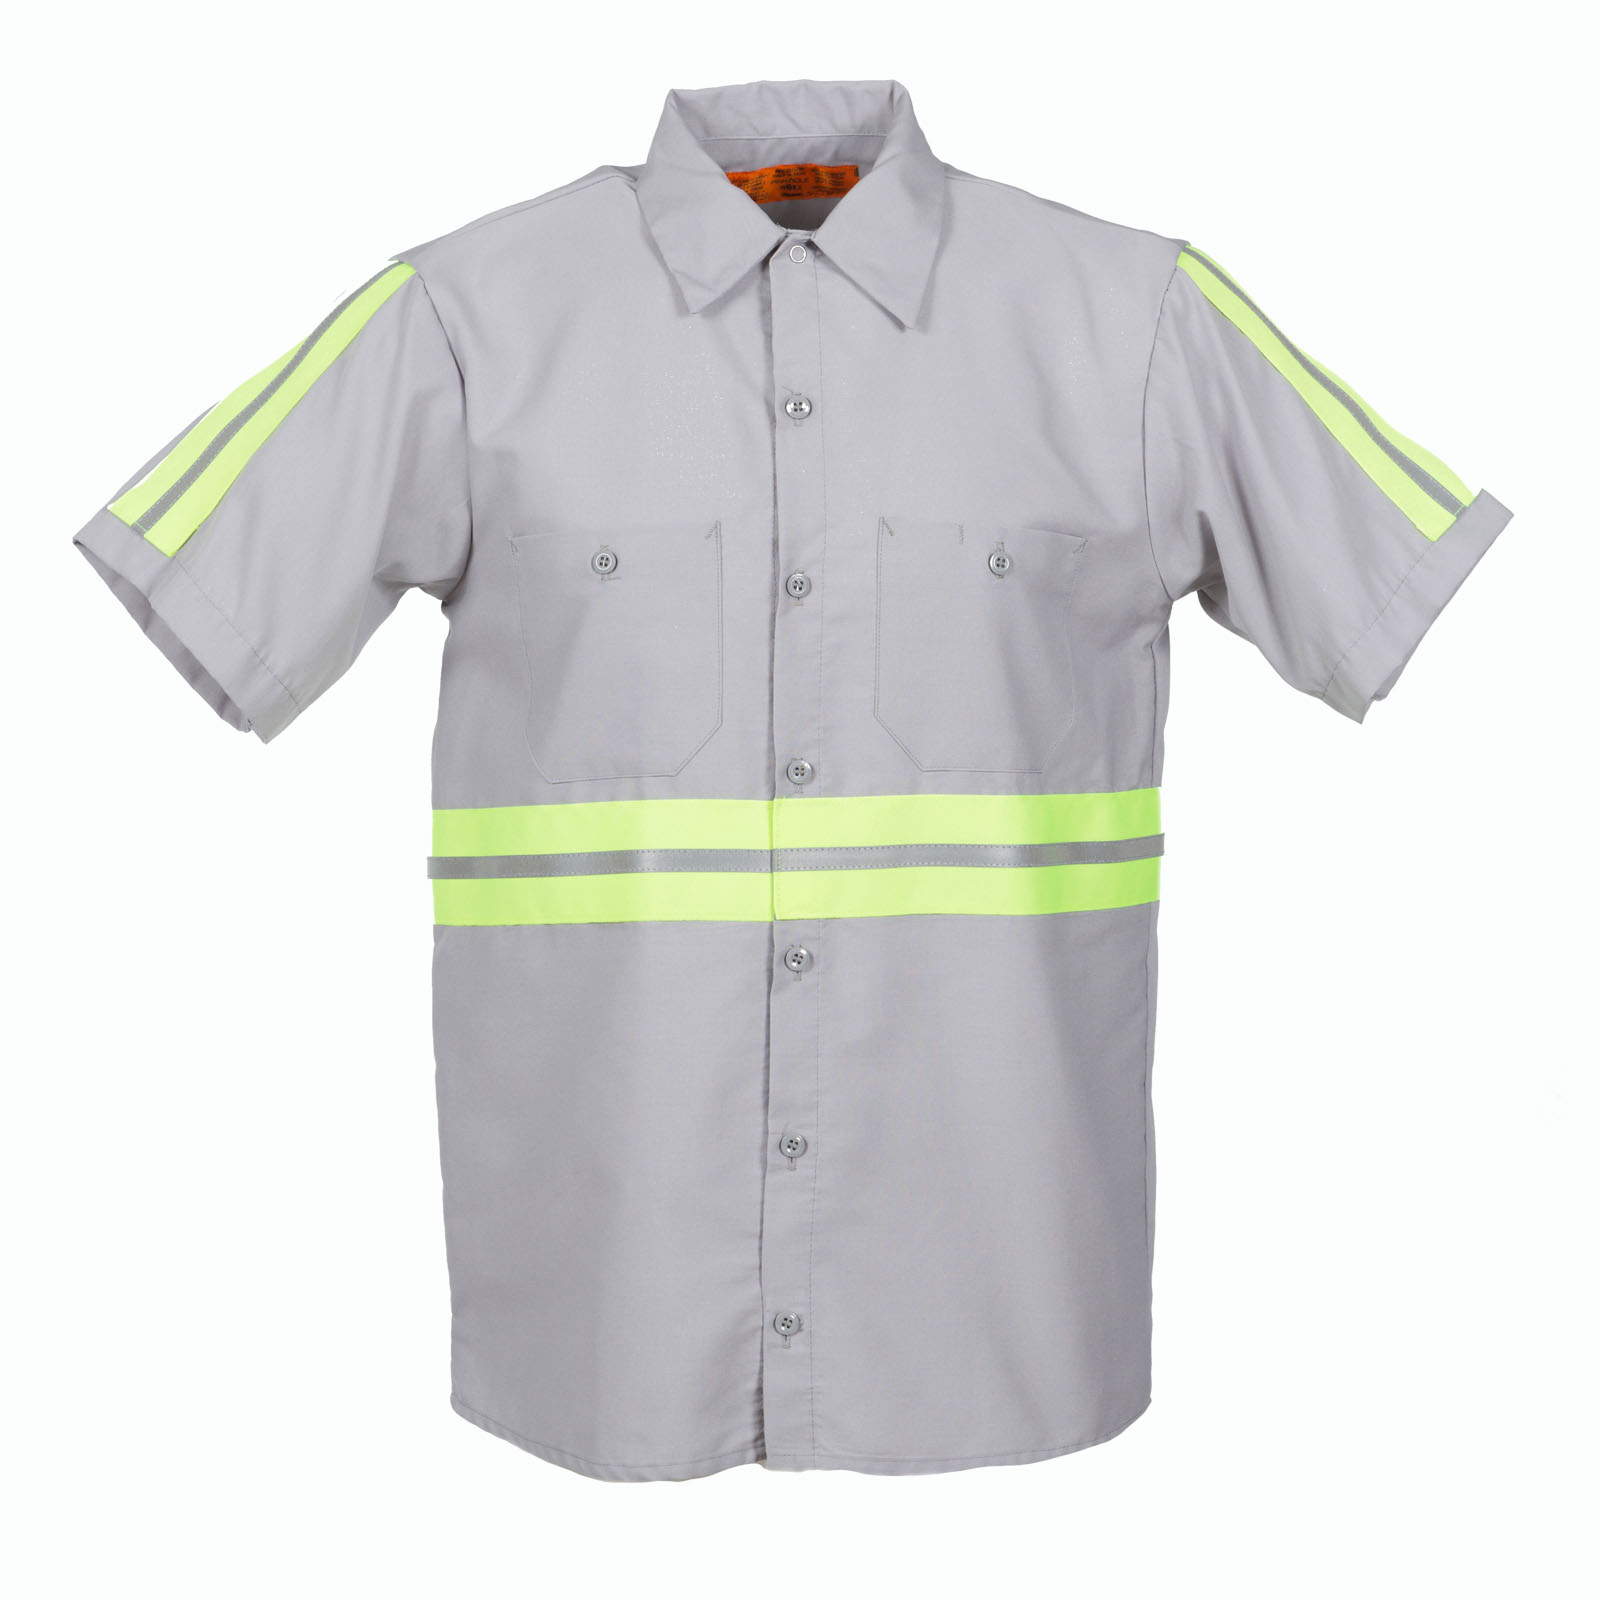 65/35 Enhanced Visibility Men's Short Sleeve Industrial Work Shirt-Pinnacle WorX